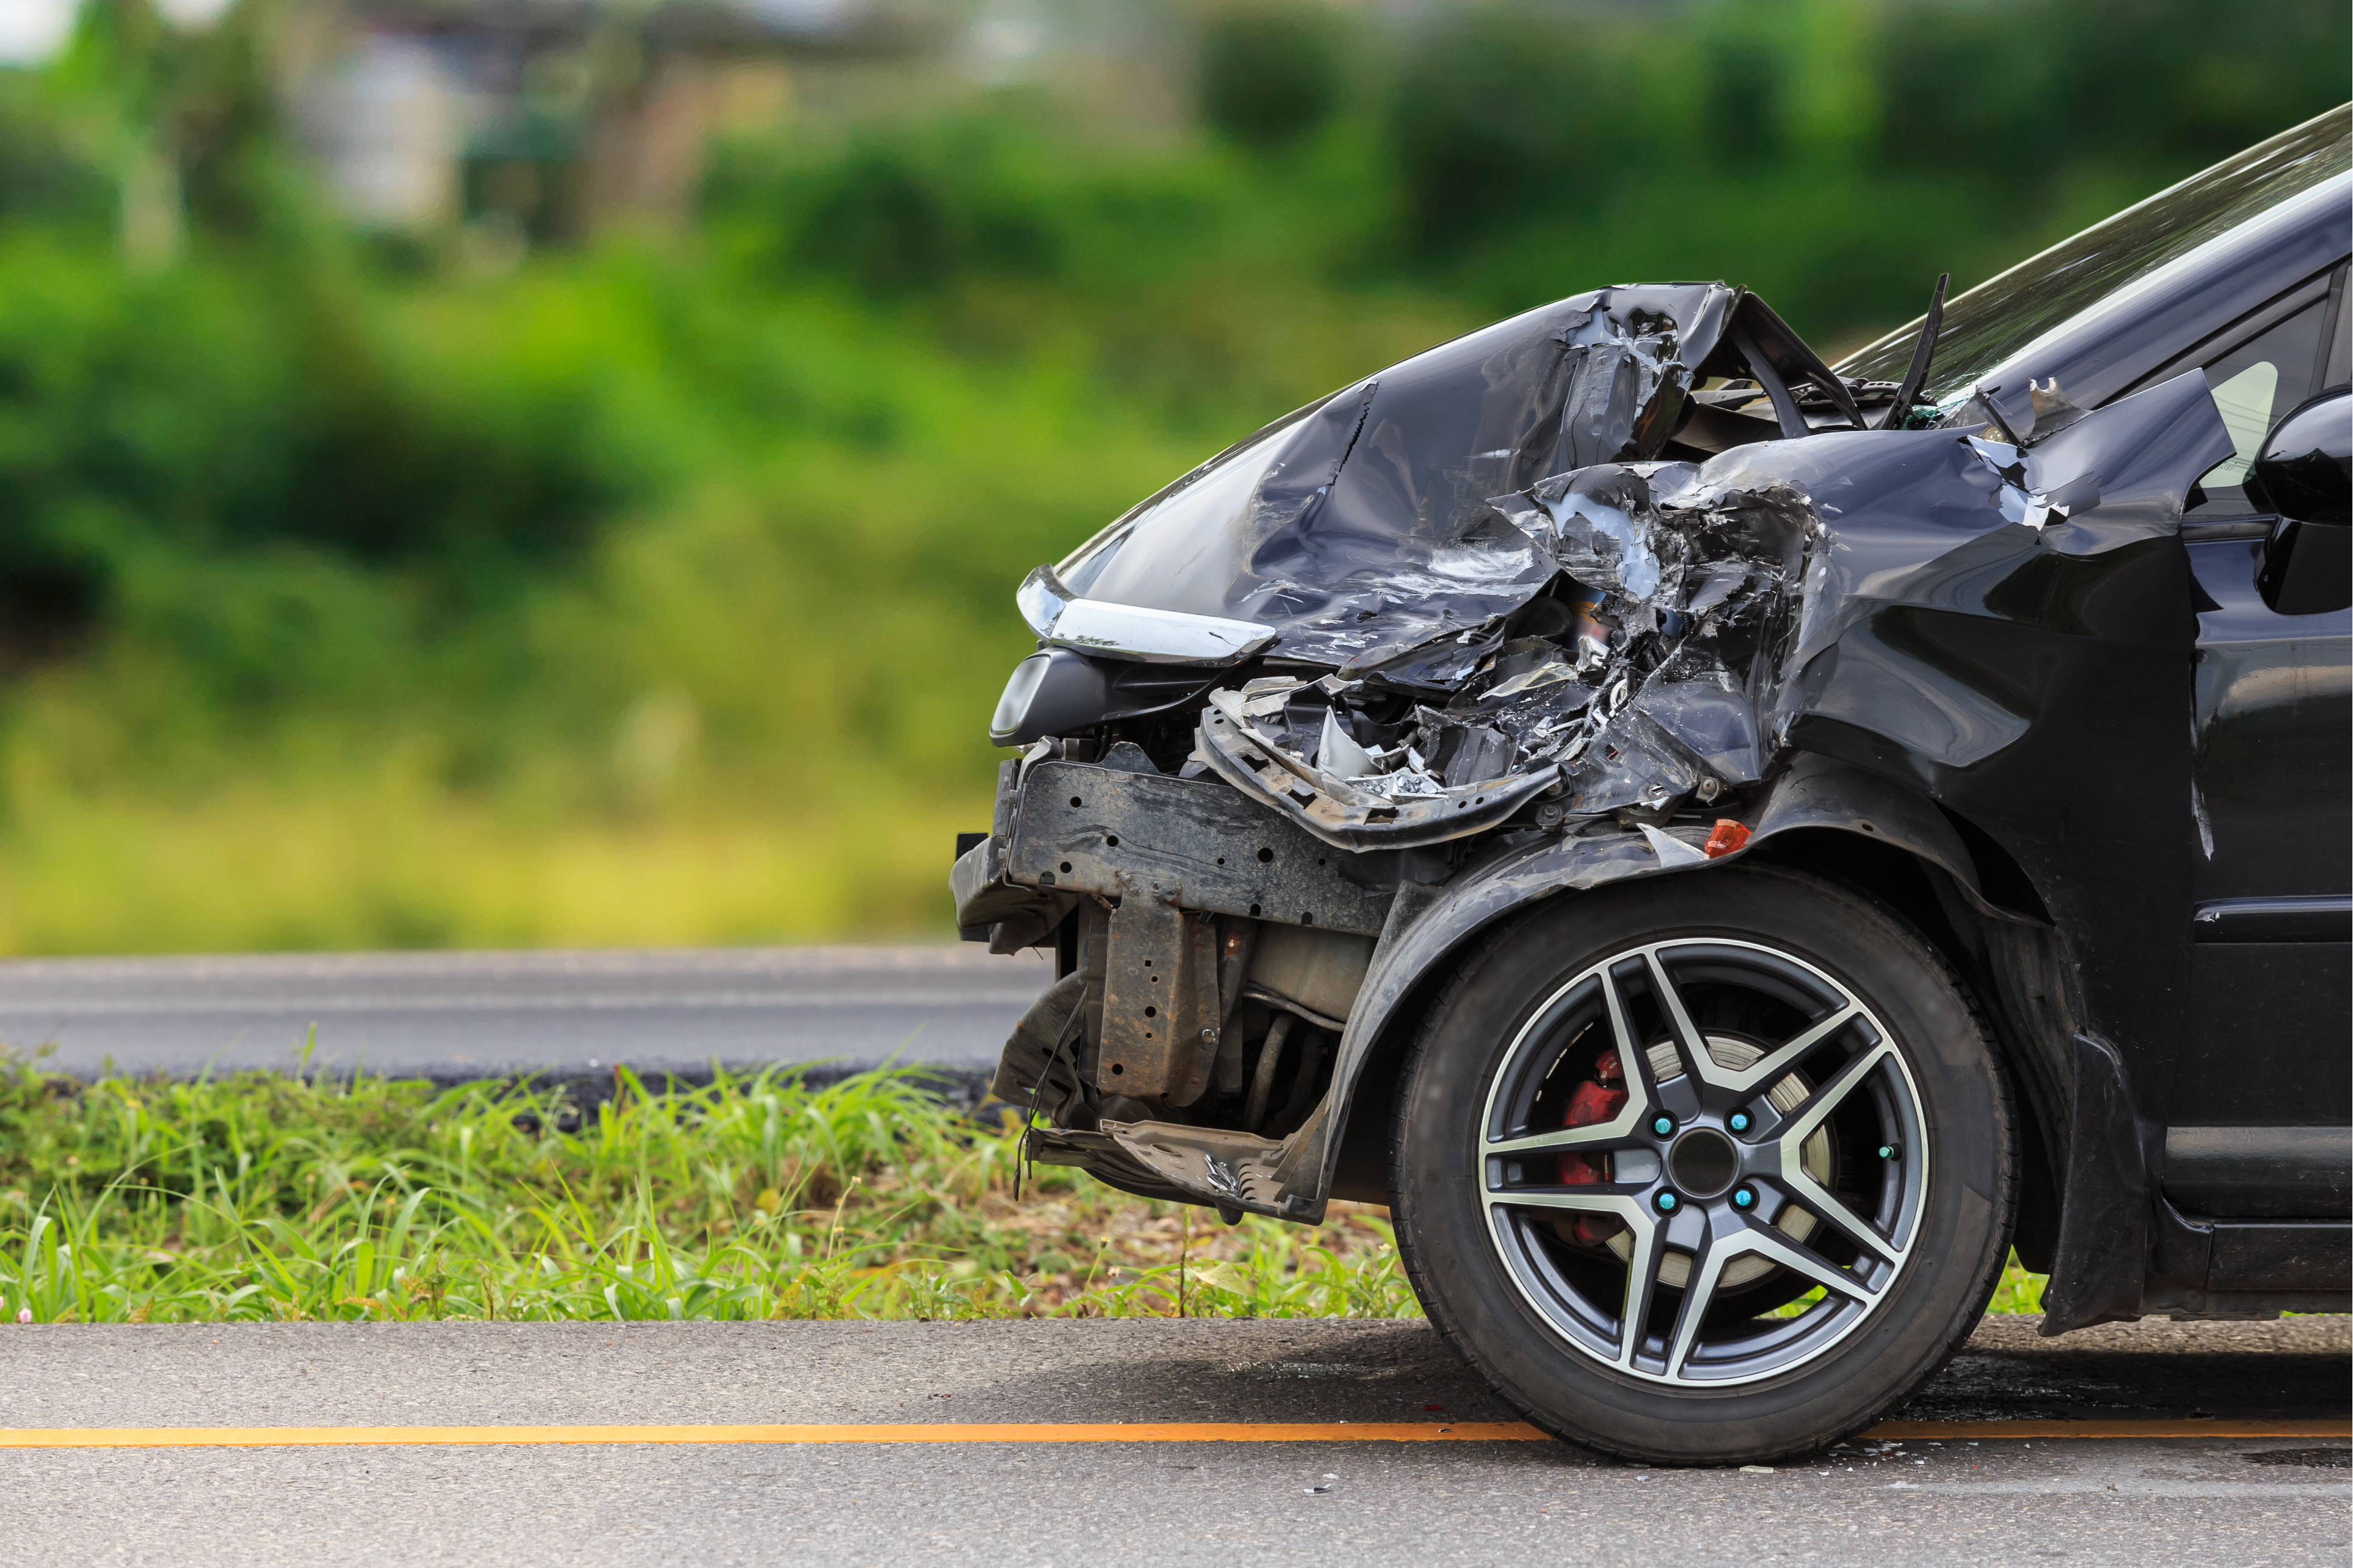 Texas car accident causes